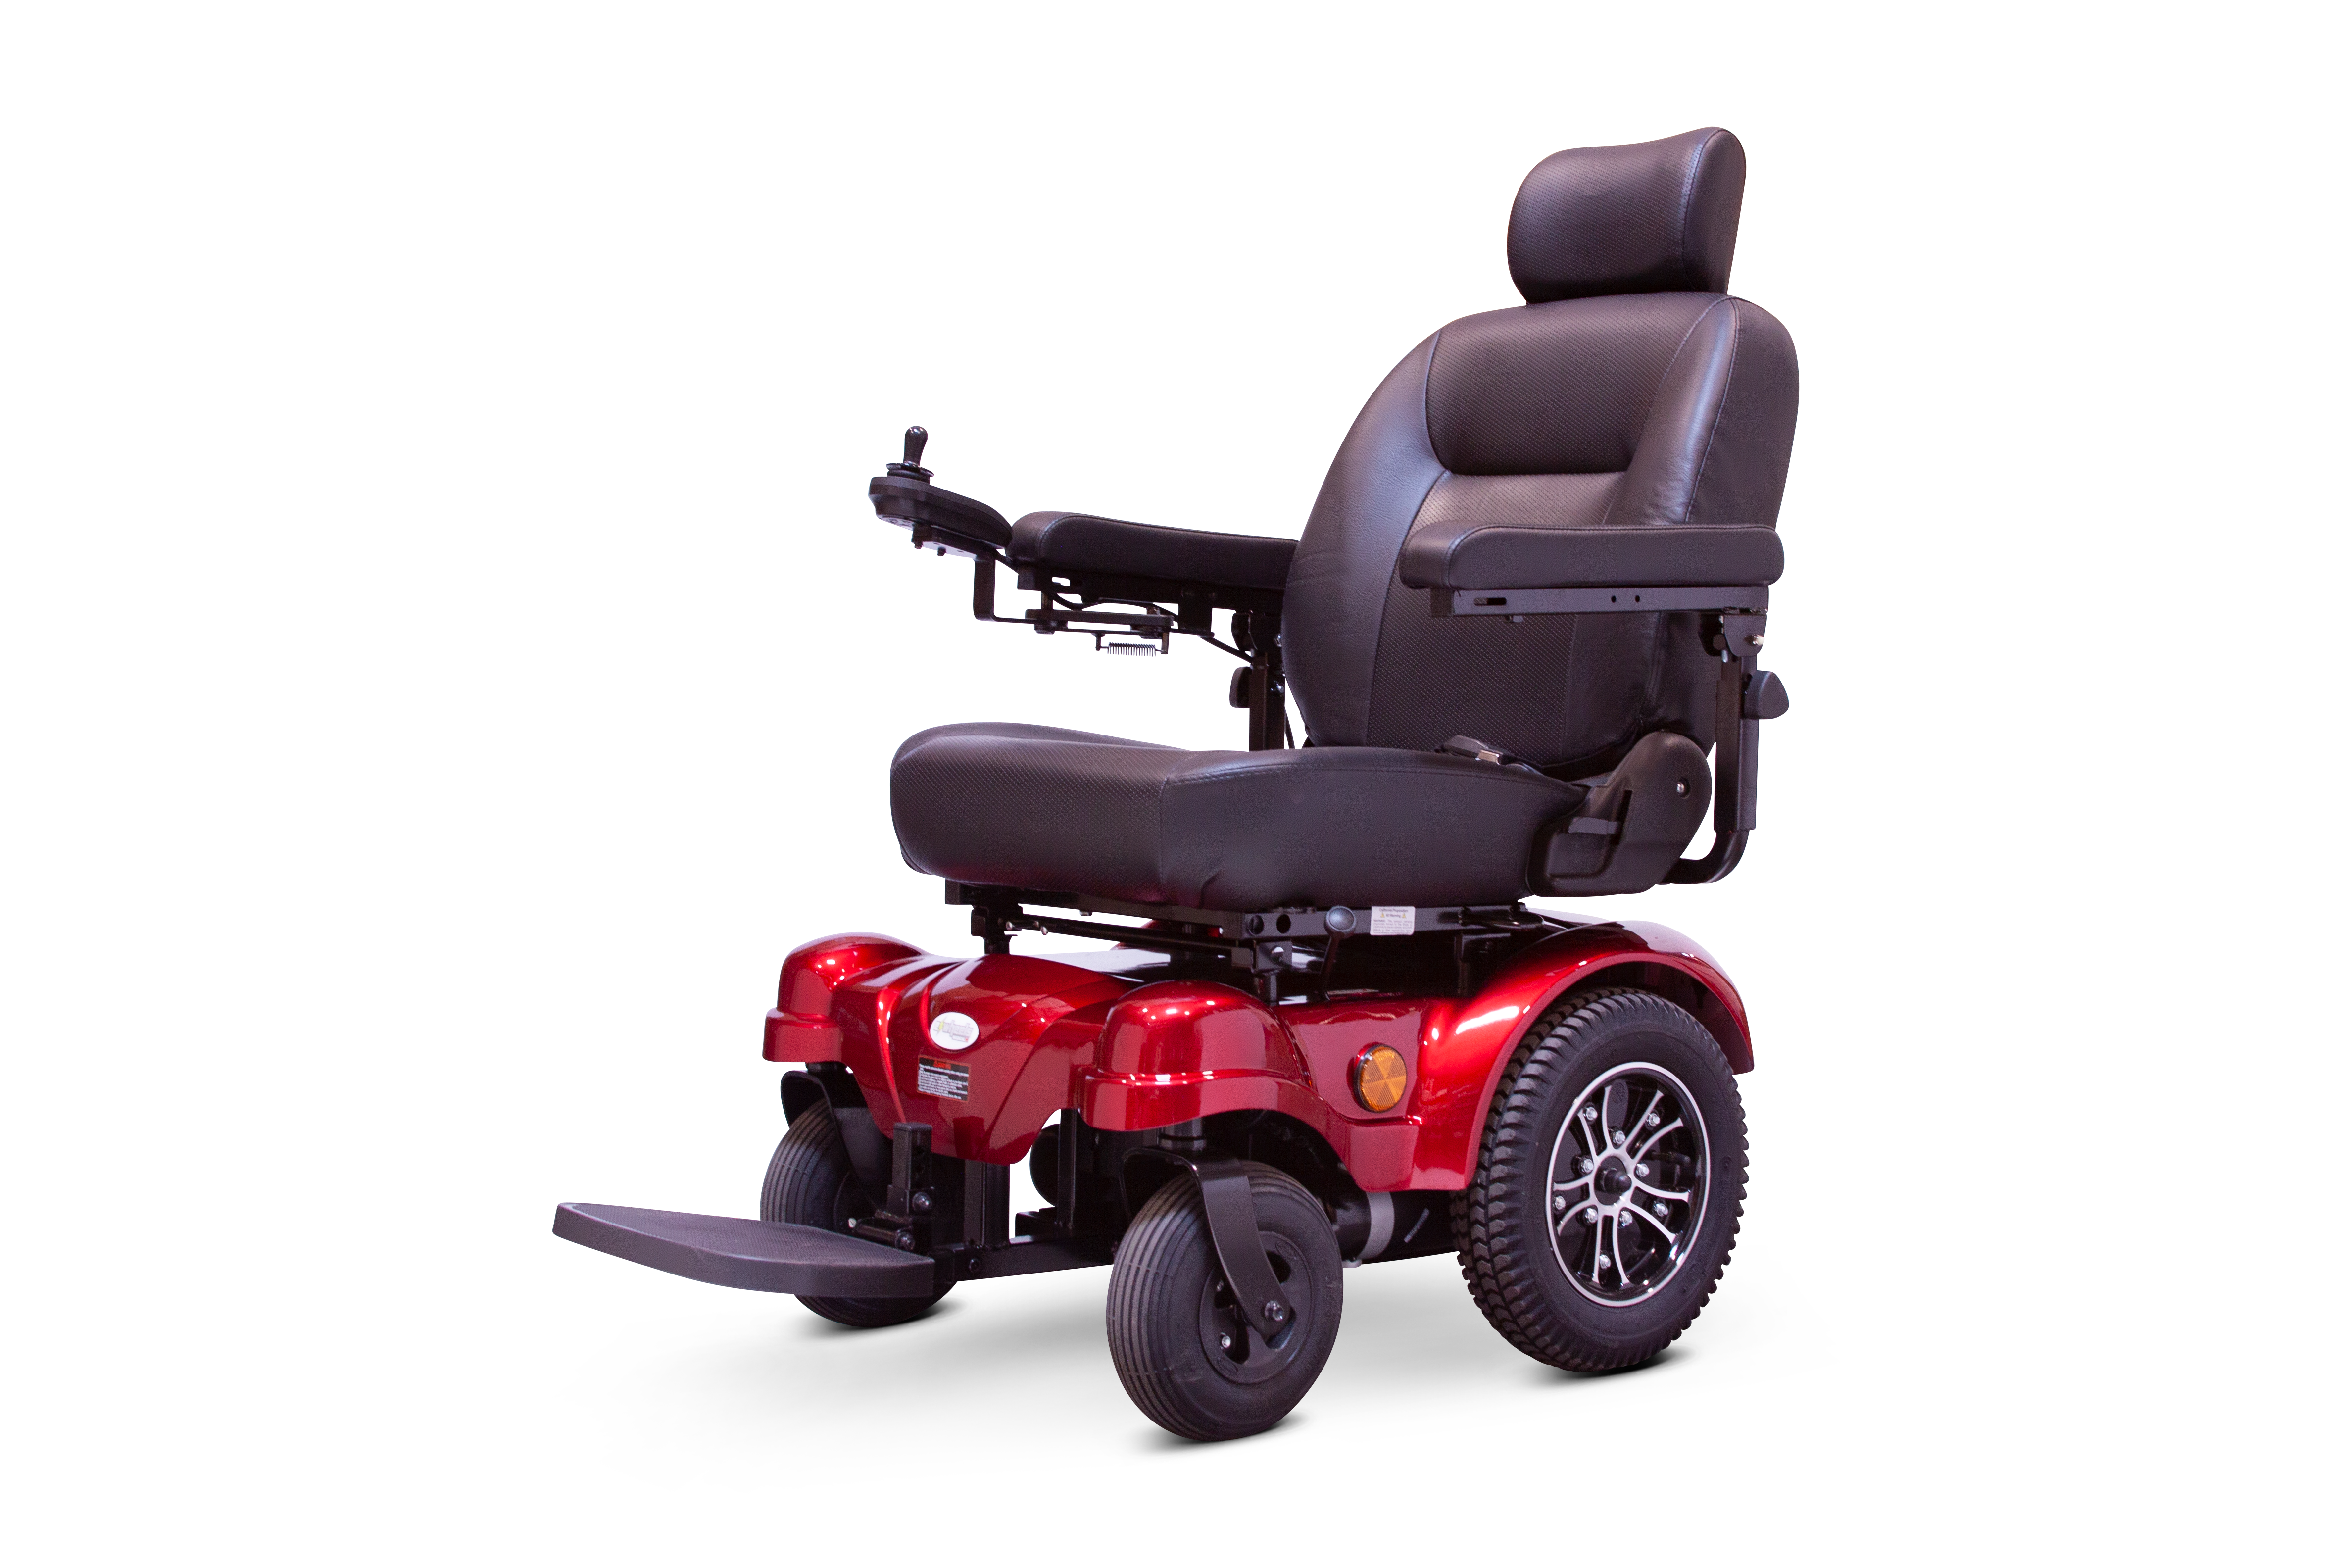 RED power wheelchair EW-M51 Medical Electric Power Wheelchair By E-Wheels Medical - PureUps